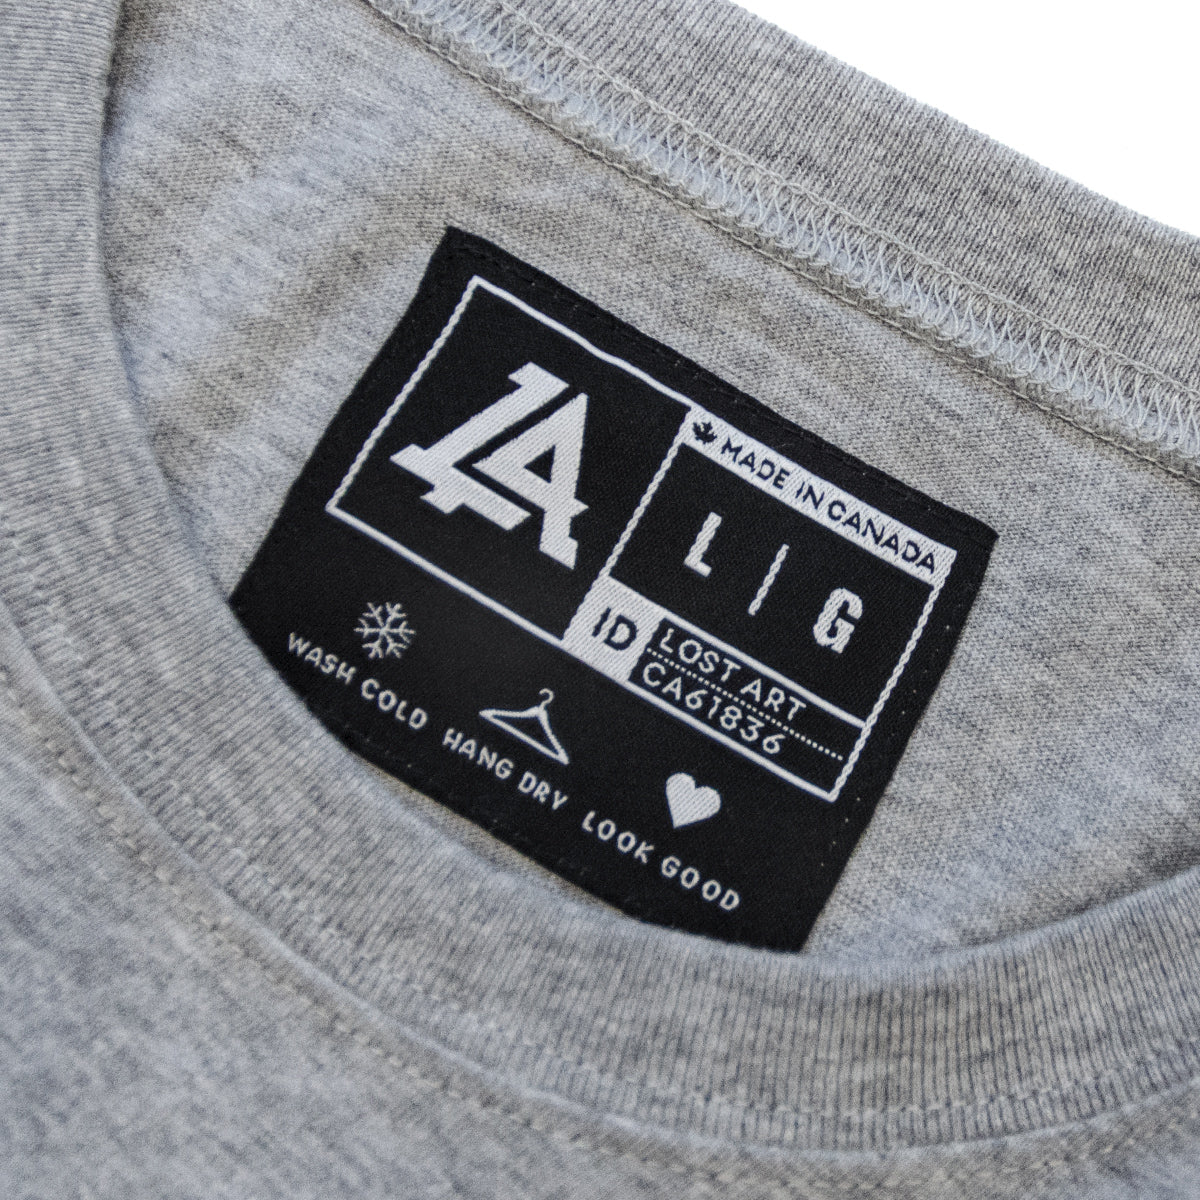 Lost Art Canada - white on grey basic logo tee inside tag view